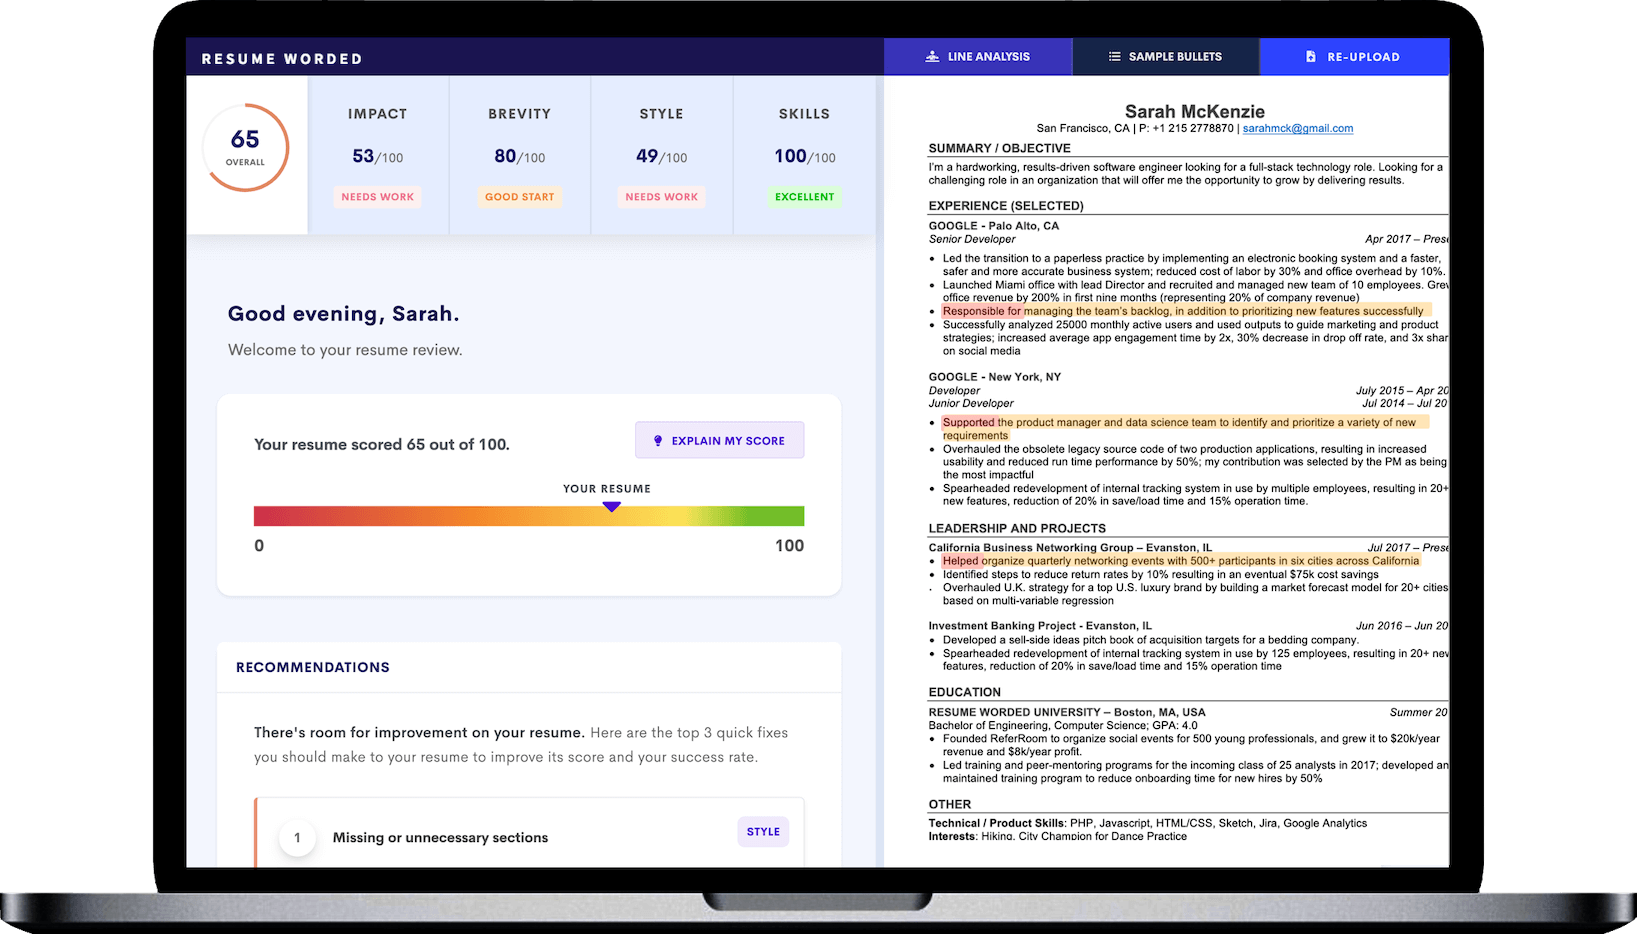 Our all-new resume checker is powered by AI